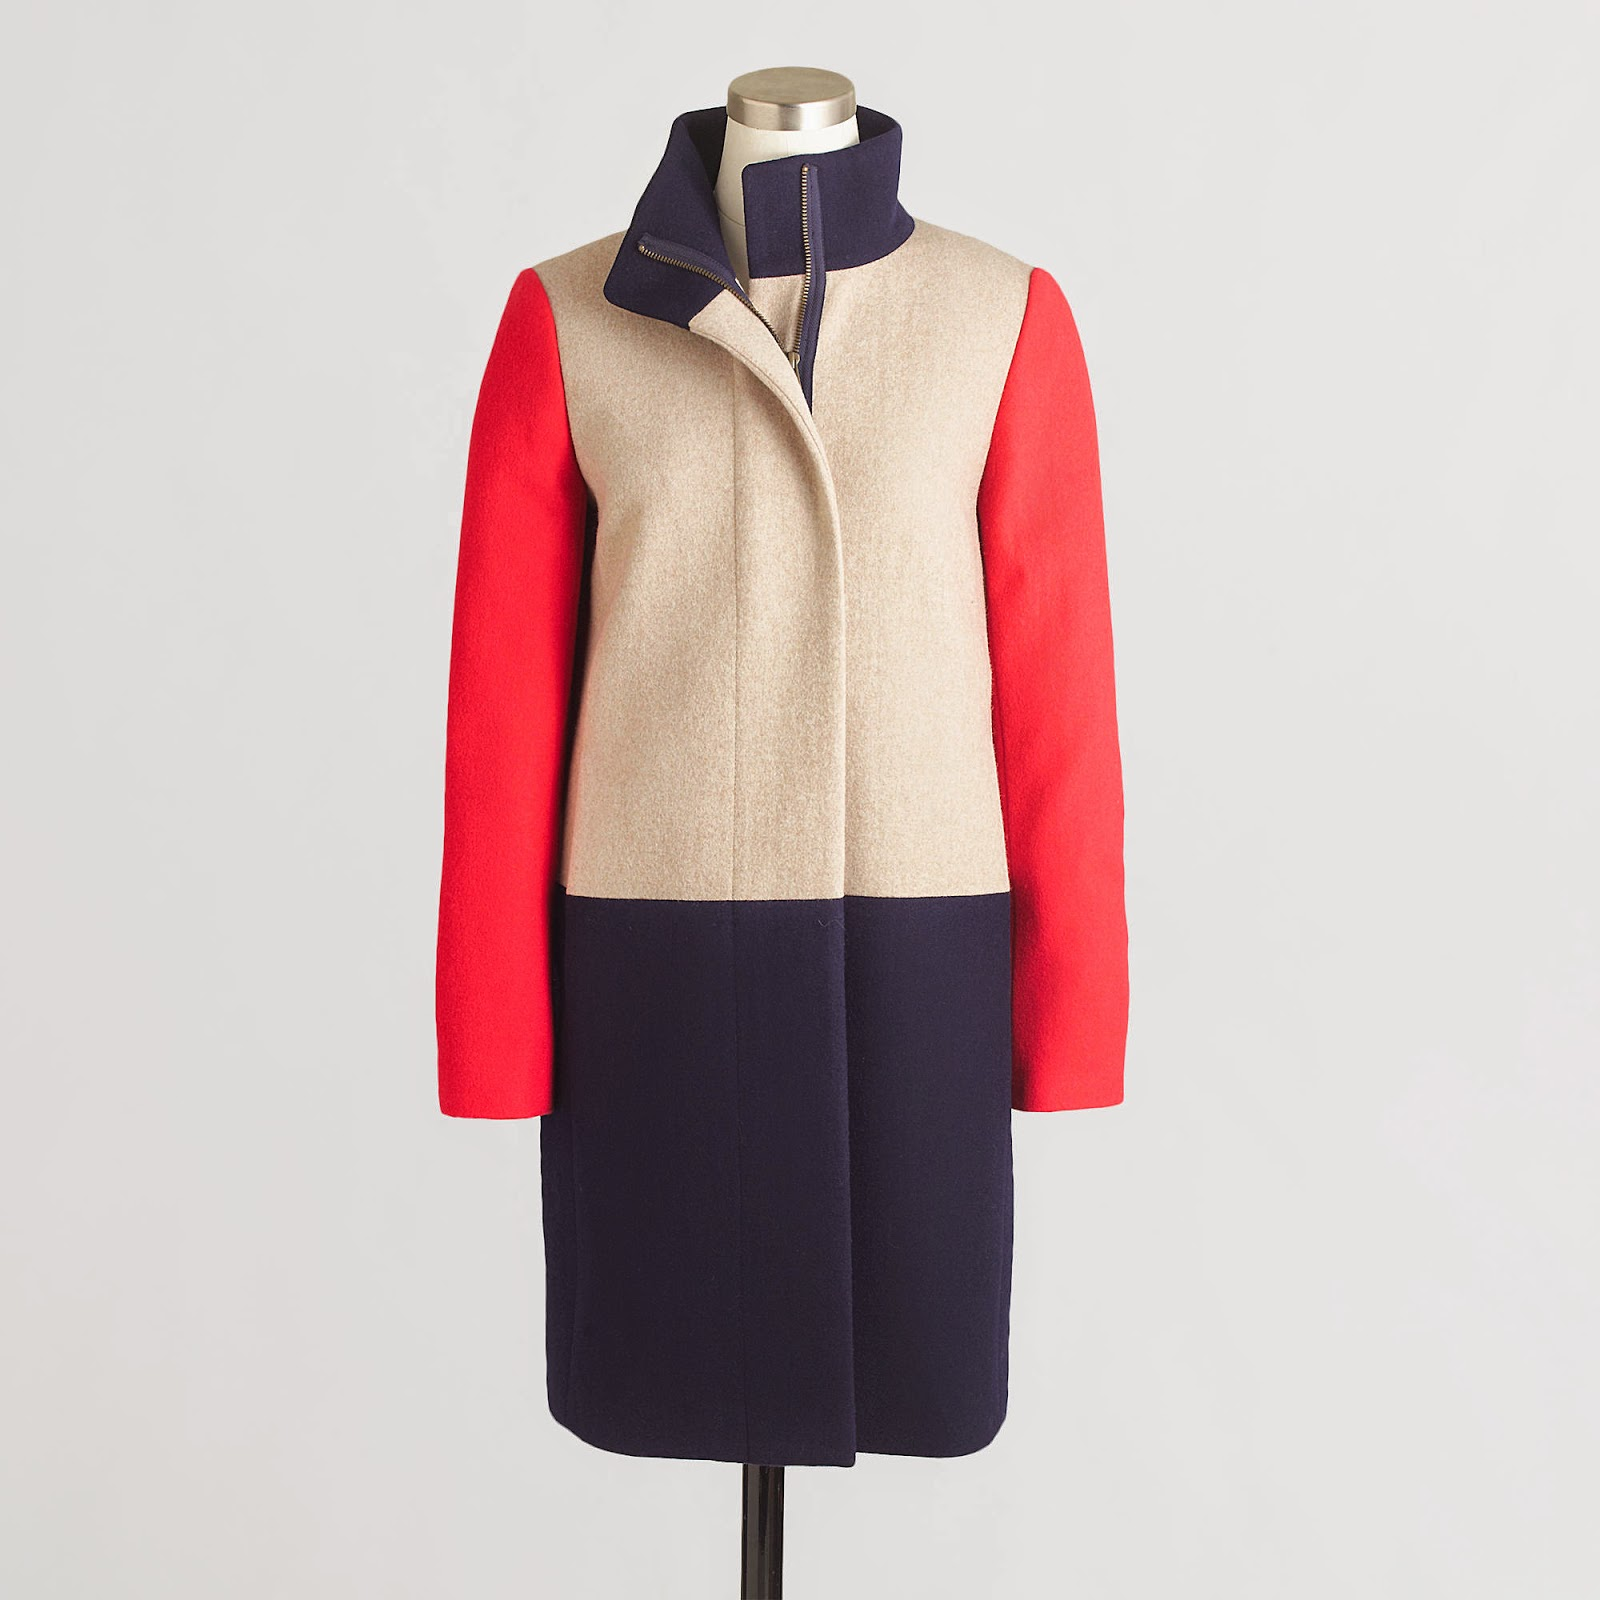 JCrew Colorblock coat, Red WHite Blue colorblock coat